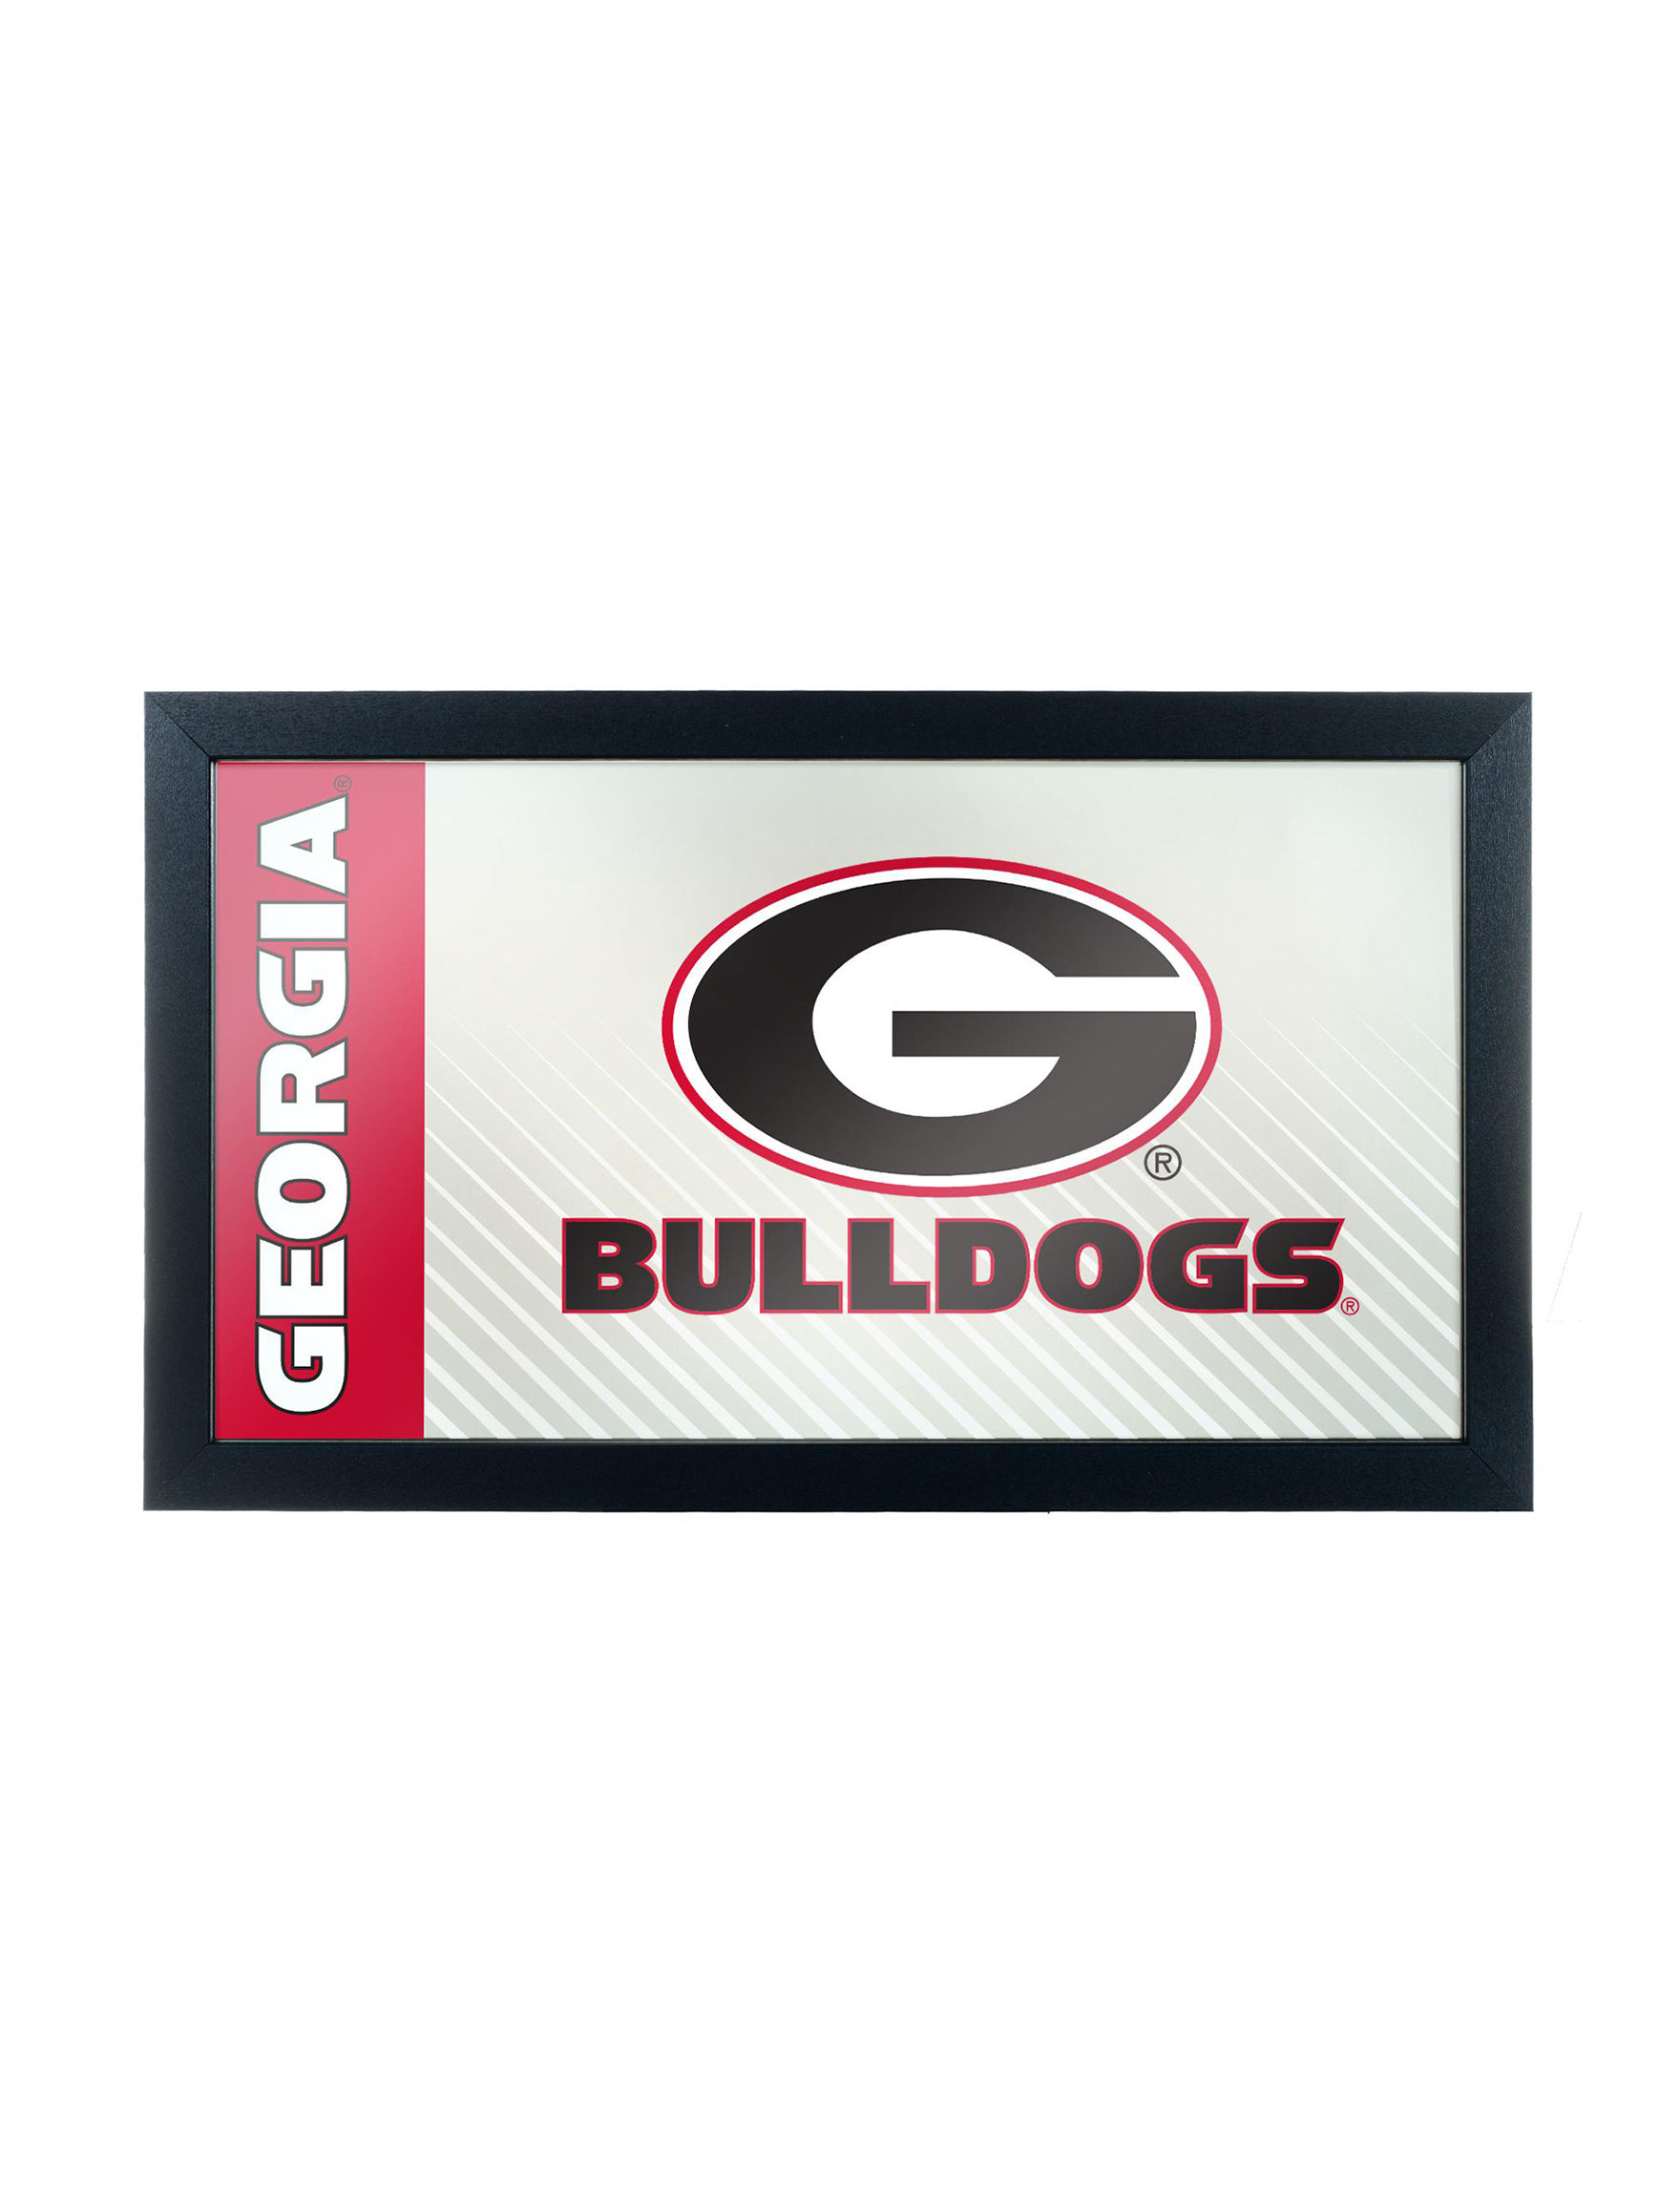 NCAA Red / Black / White Home Accents Wall Decor